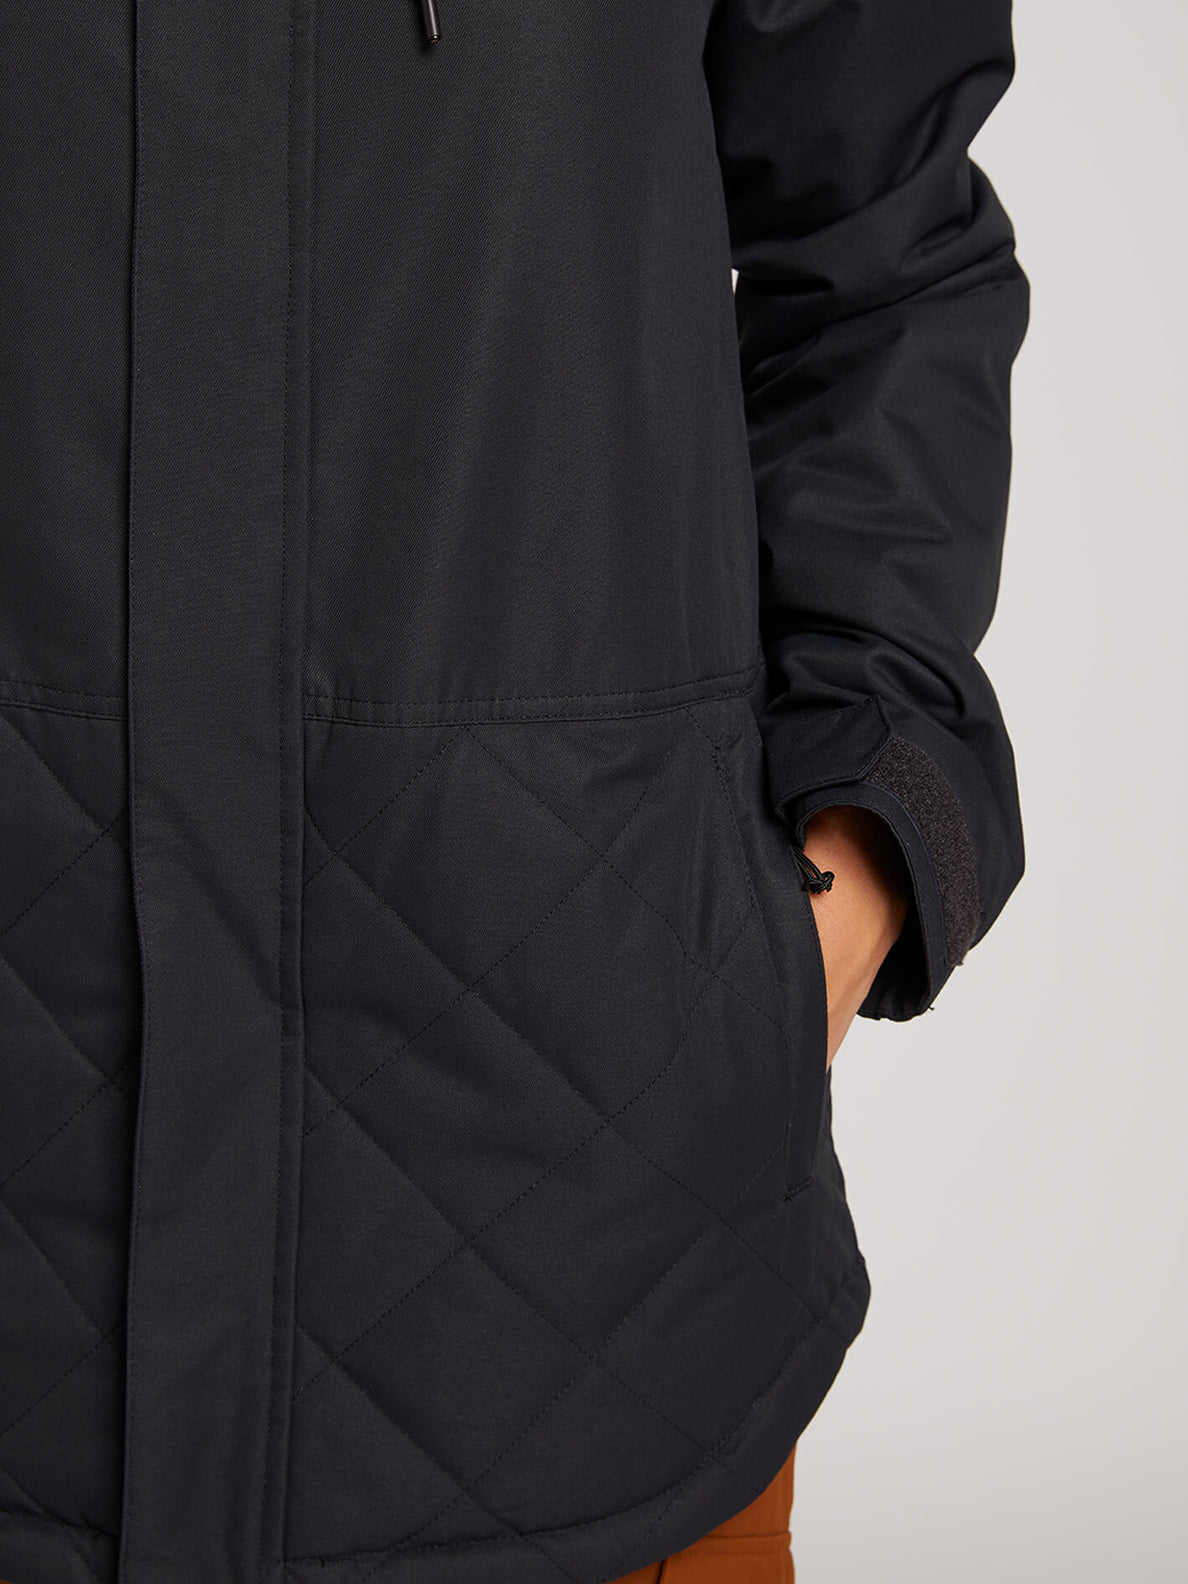 Winrose Insulated Jacket In Black, Fourth Alternate View